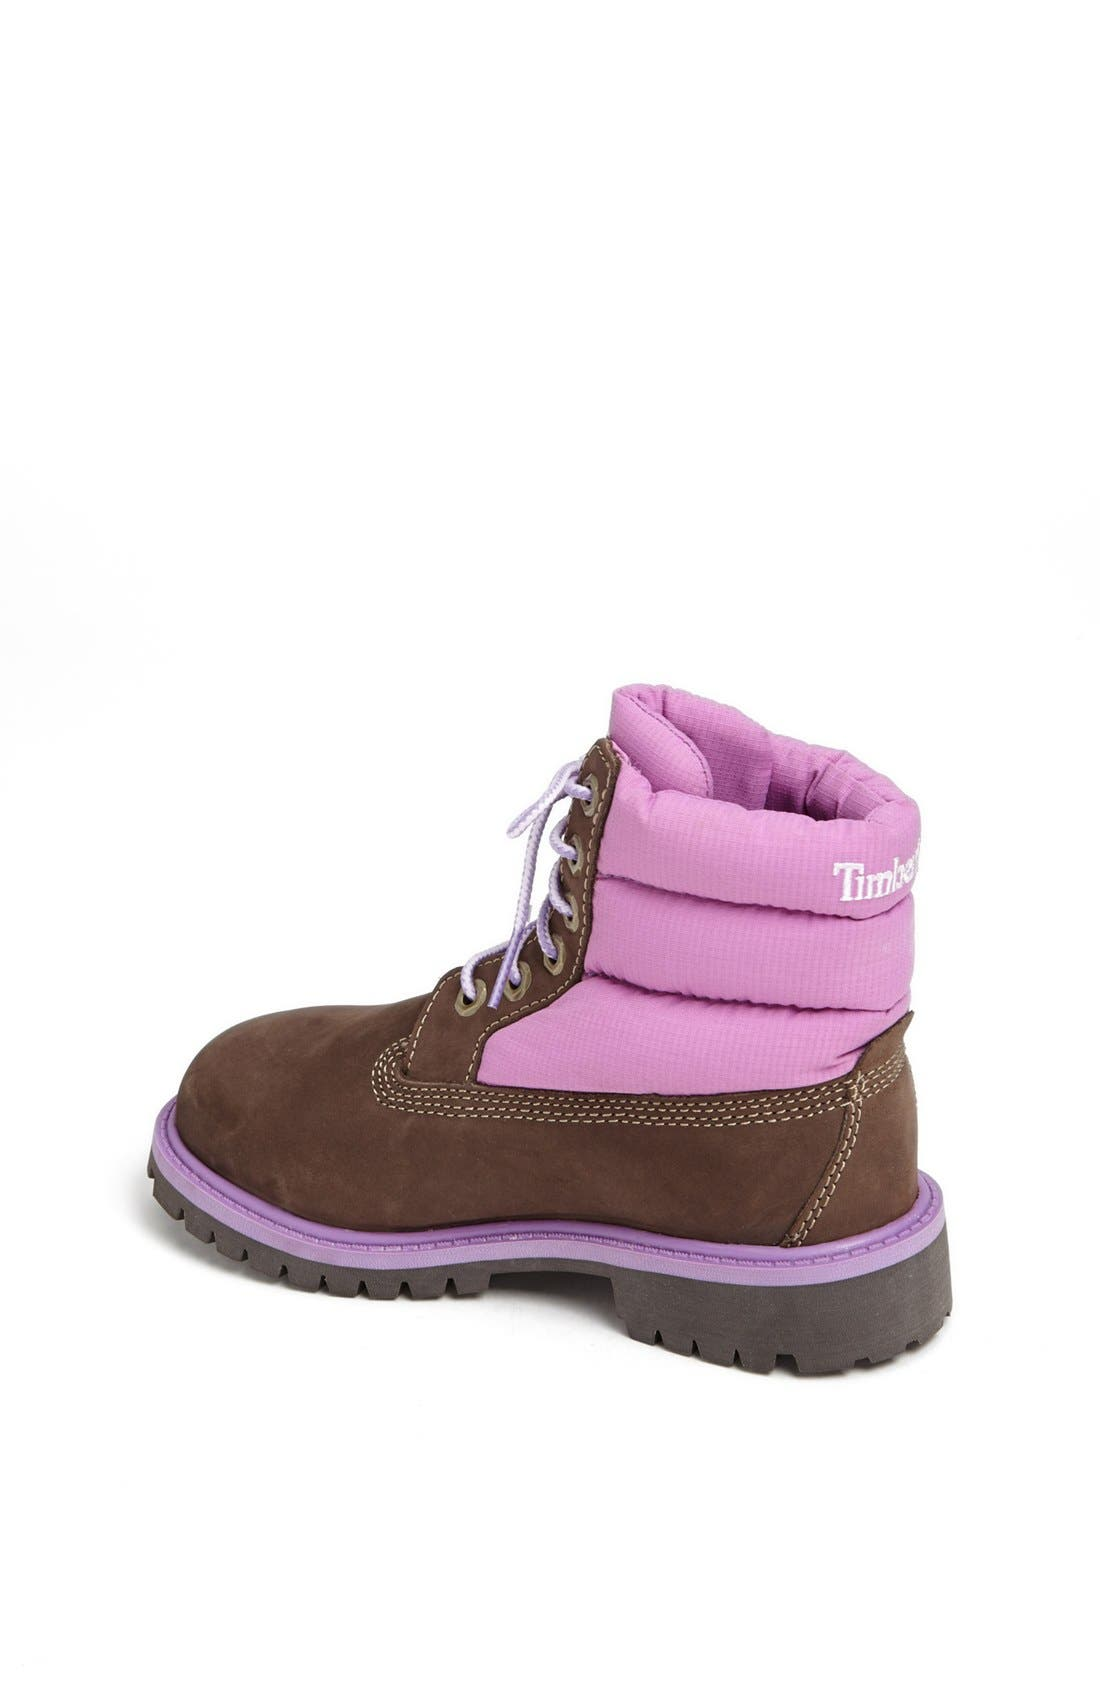 Alternate Image 2  - Timberland Quilted Boot (Toddler, Little Kid & Big Kid)